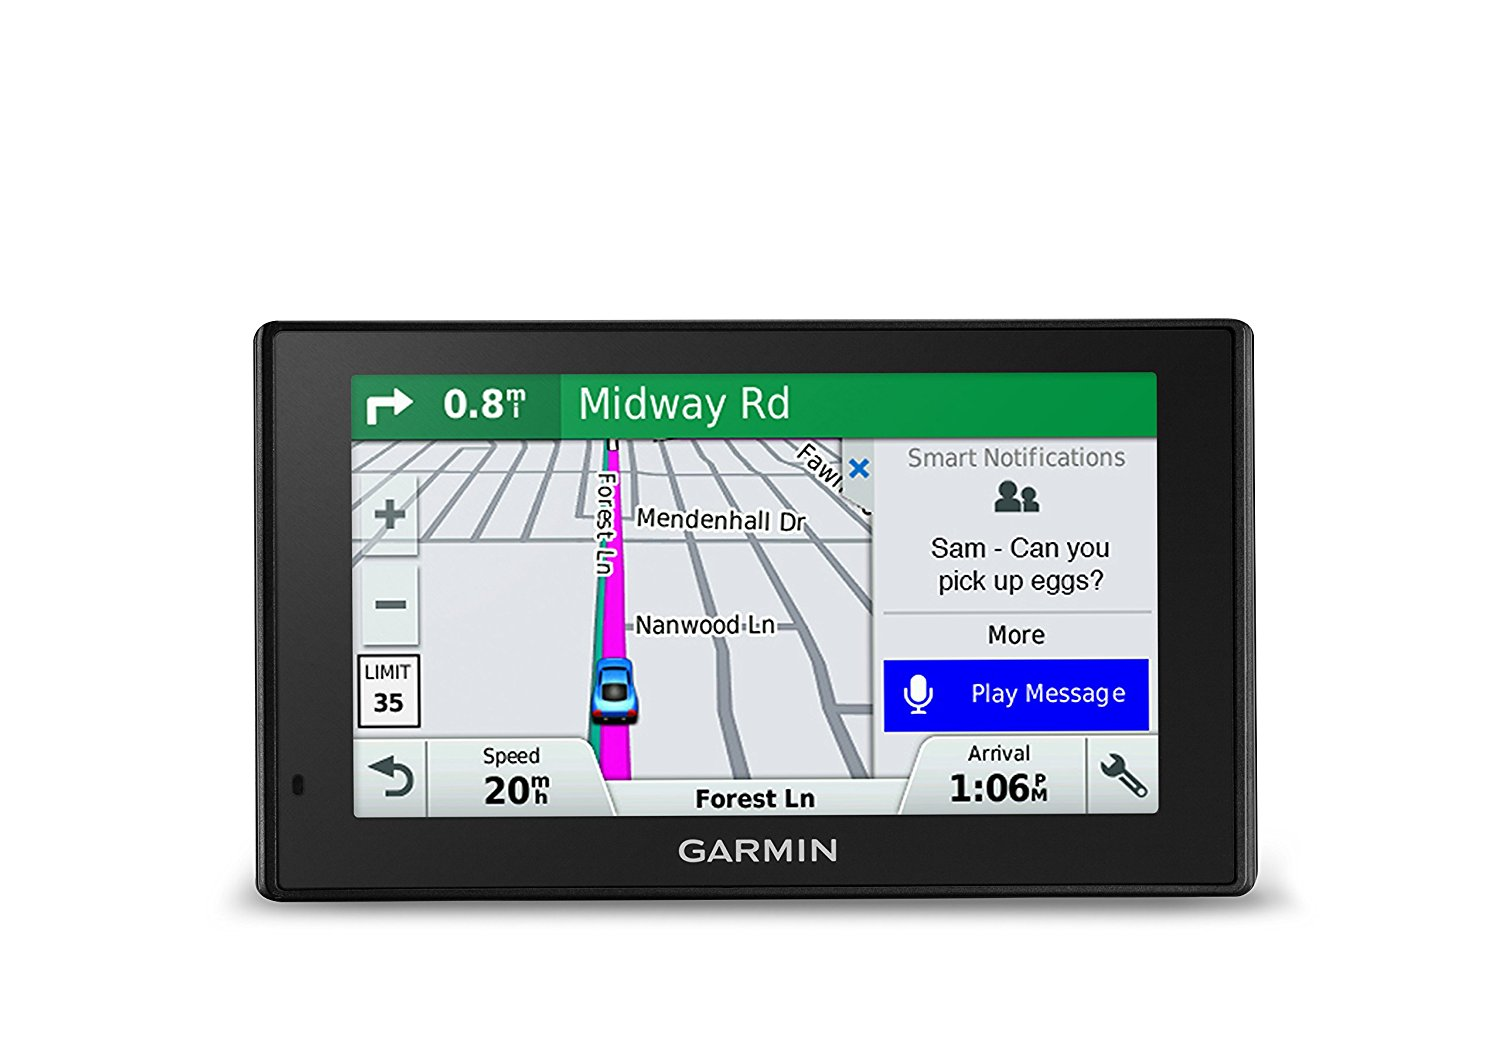 hight resolution of inilex gps wiring diagram new wiring library inilex gps wiring diagram new